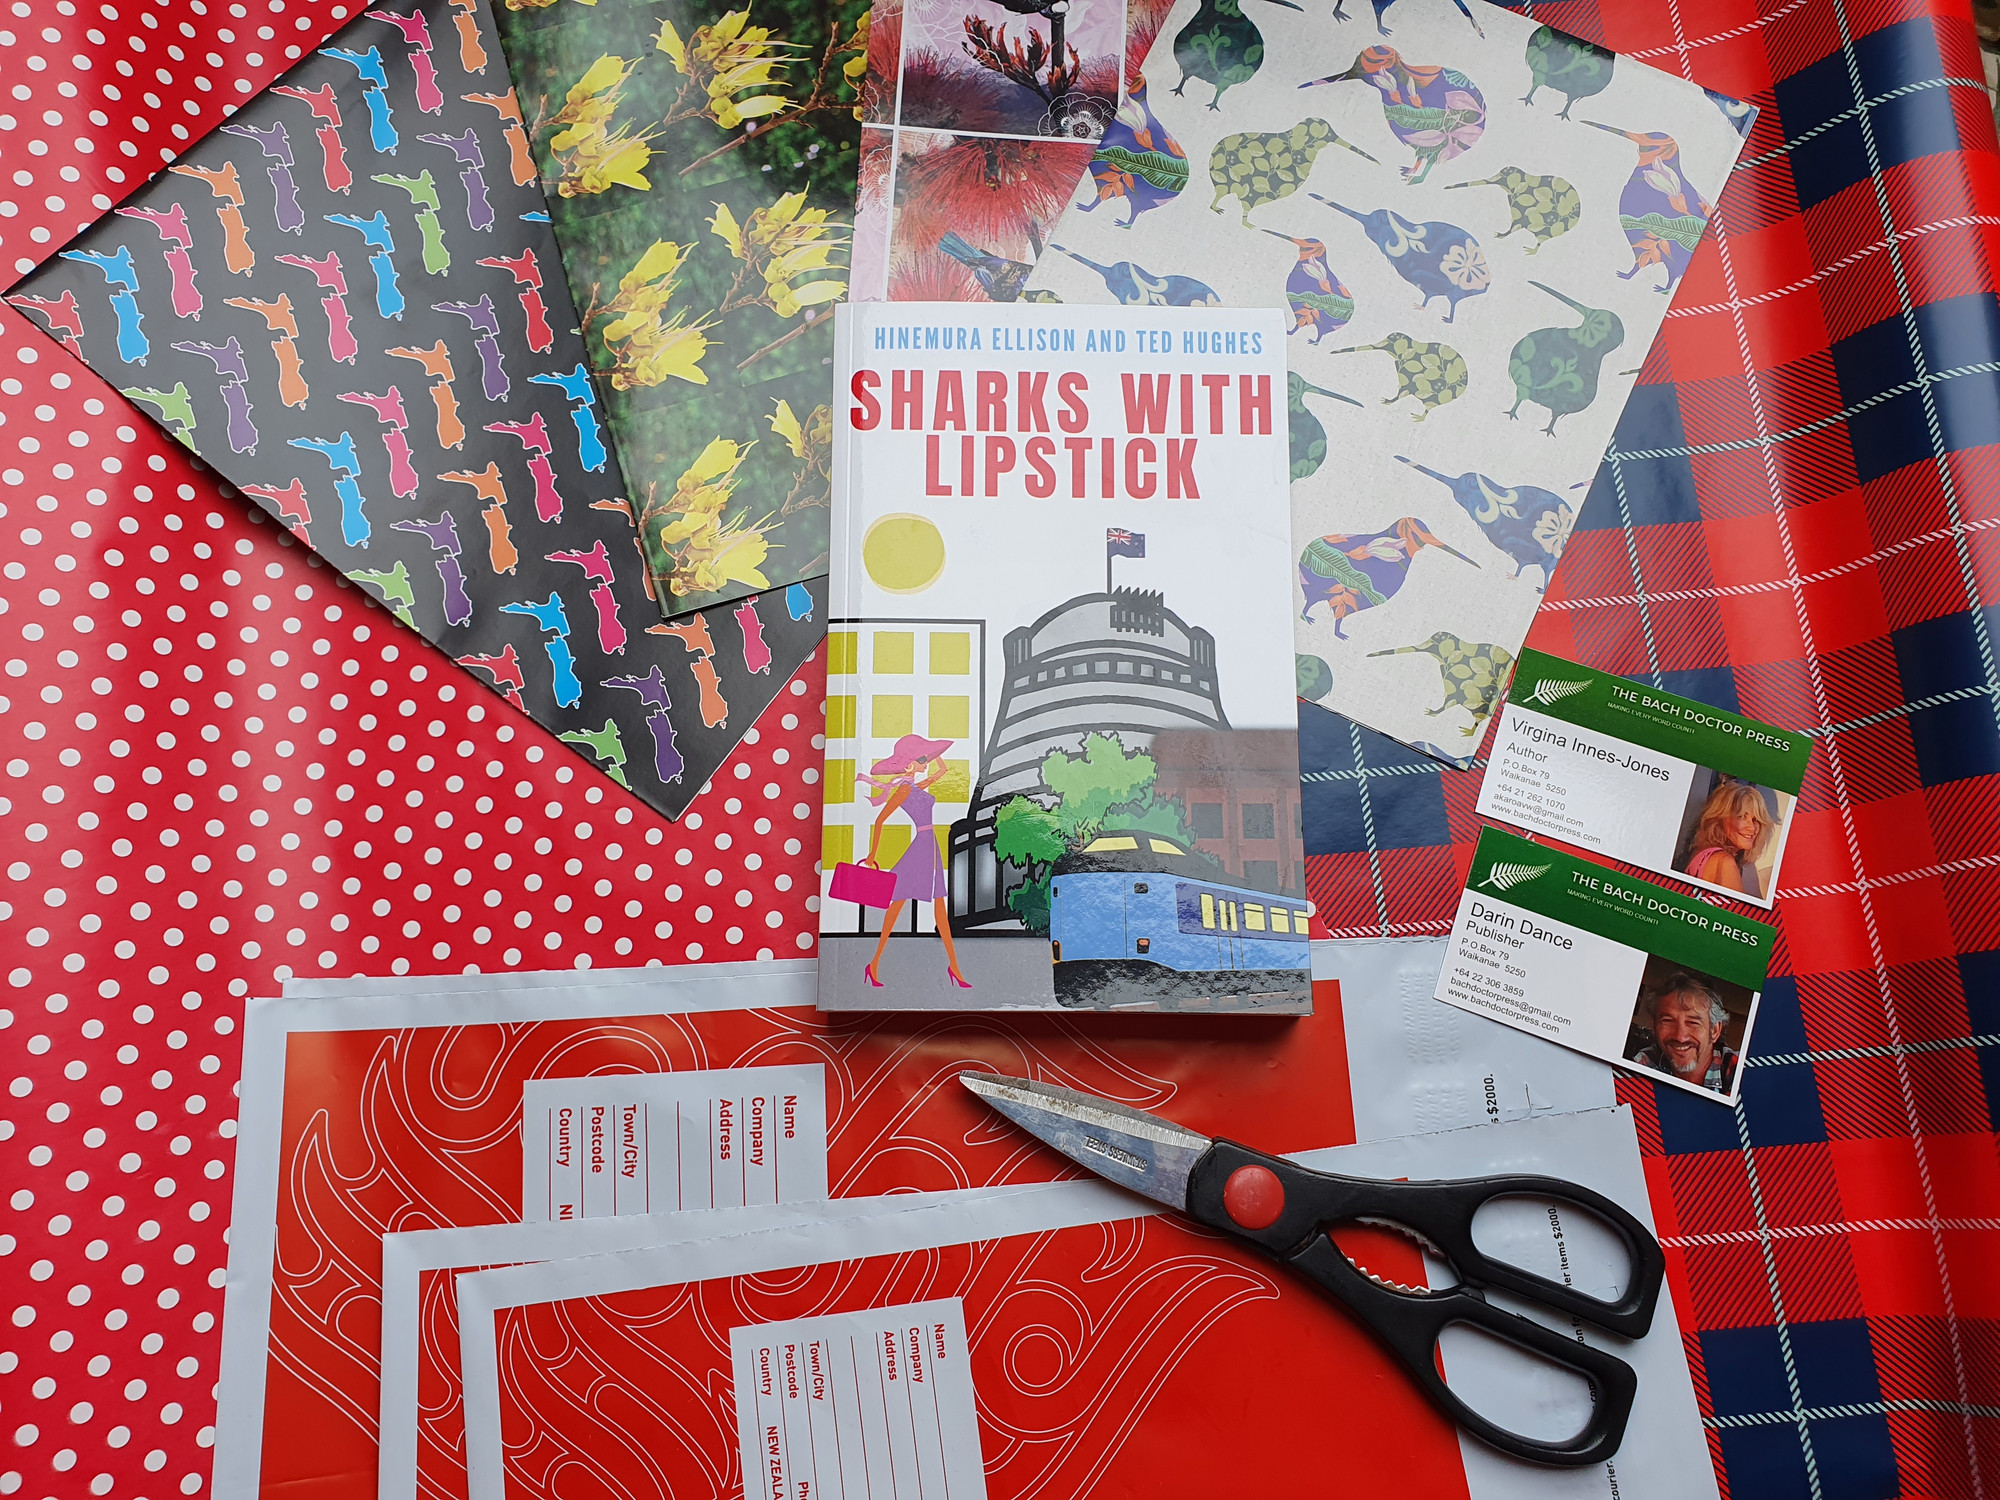 A range of colourful and Kiwi themed wrapping paper